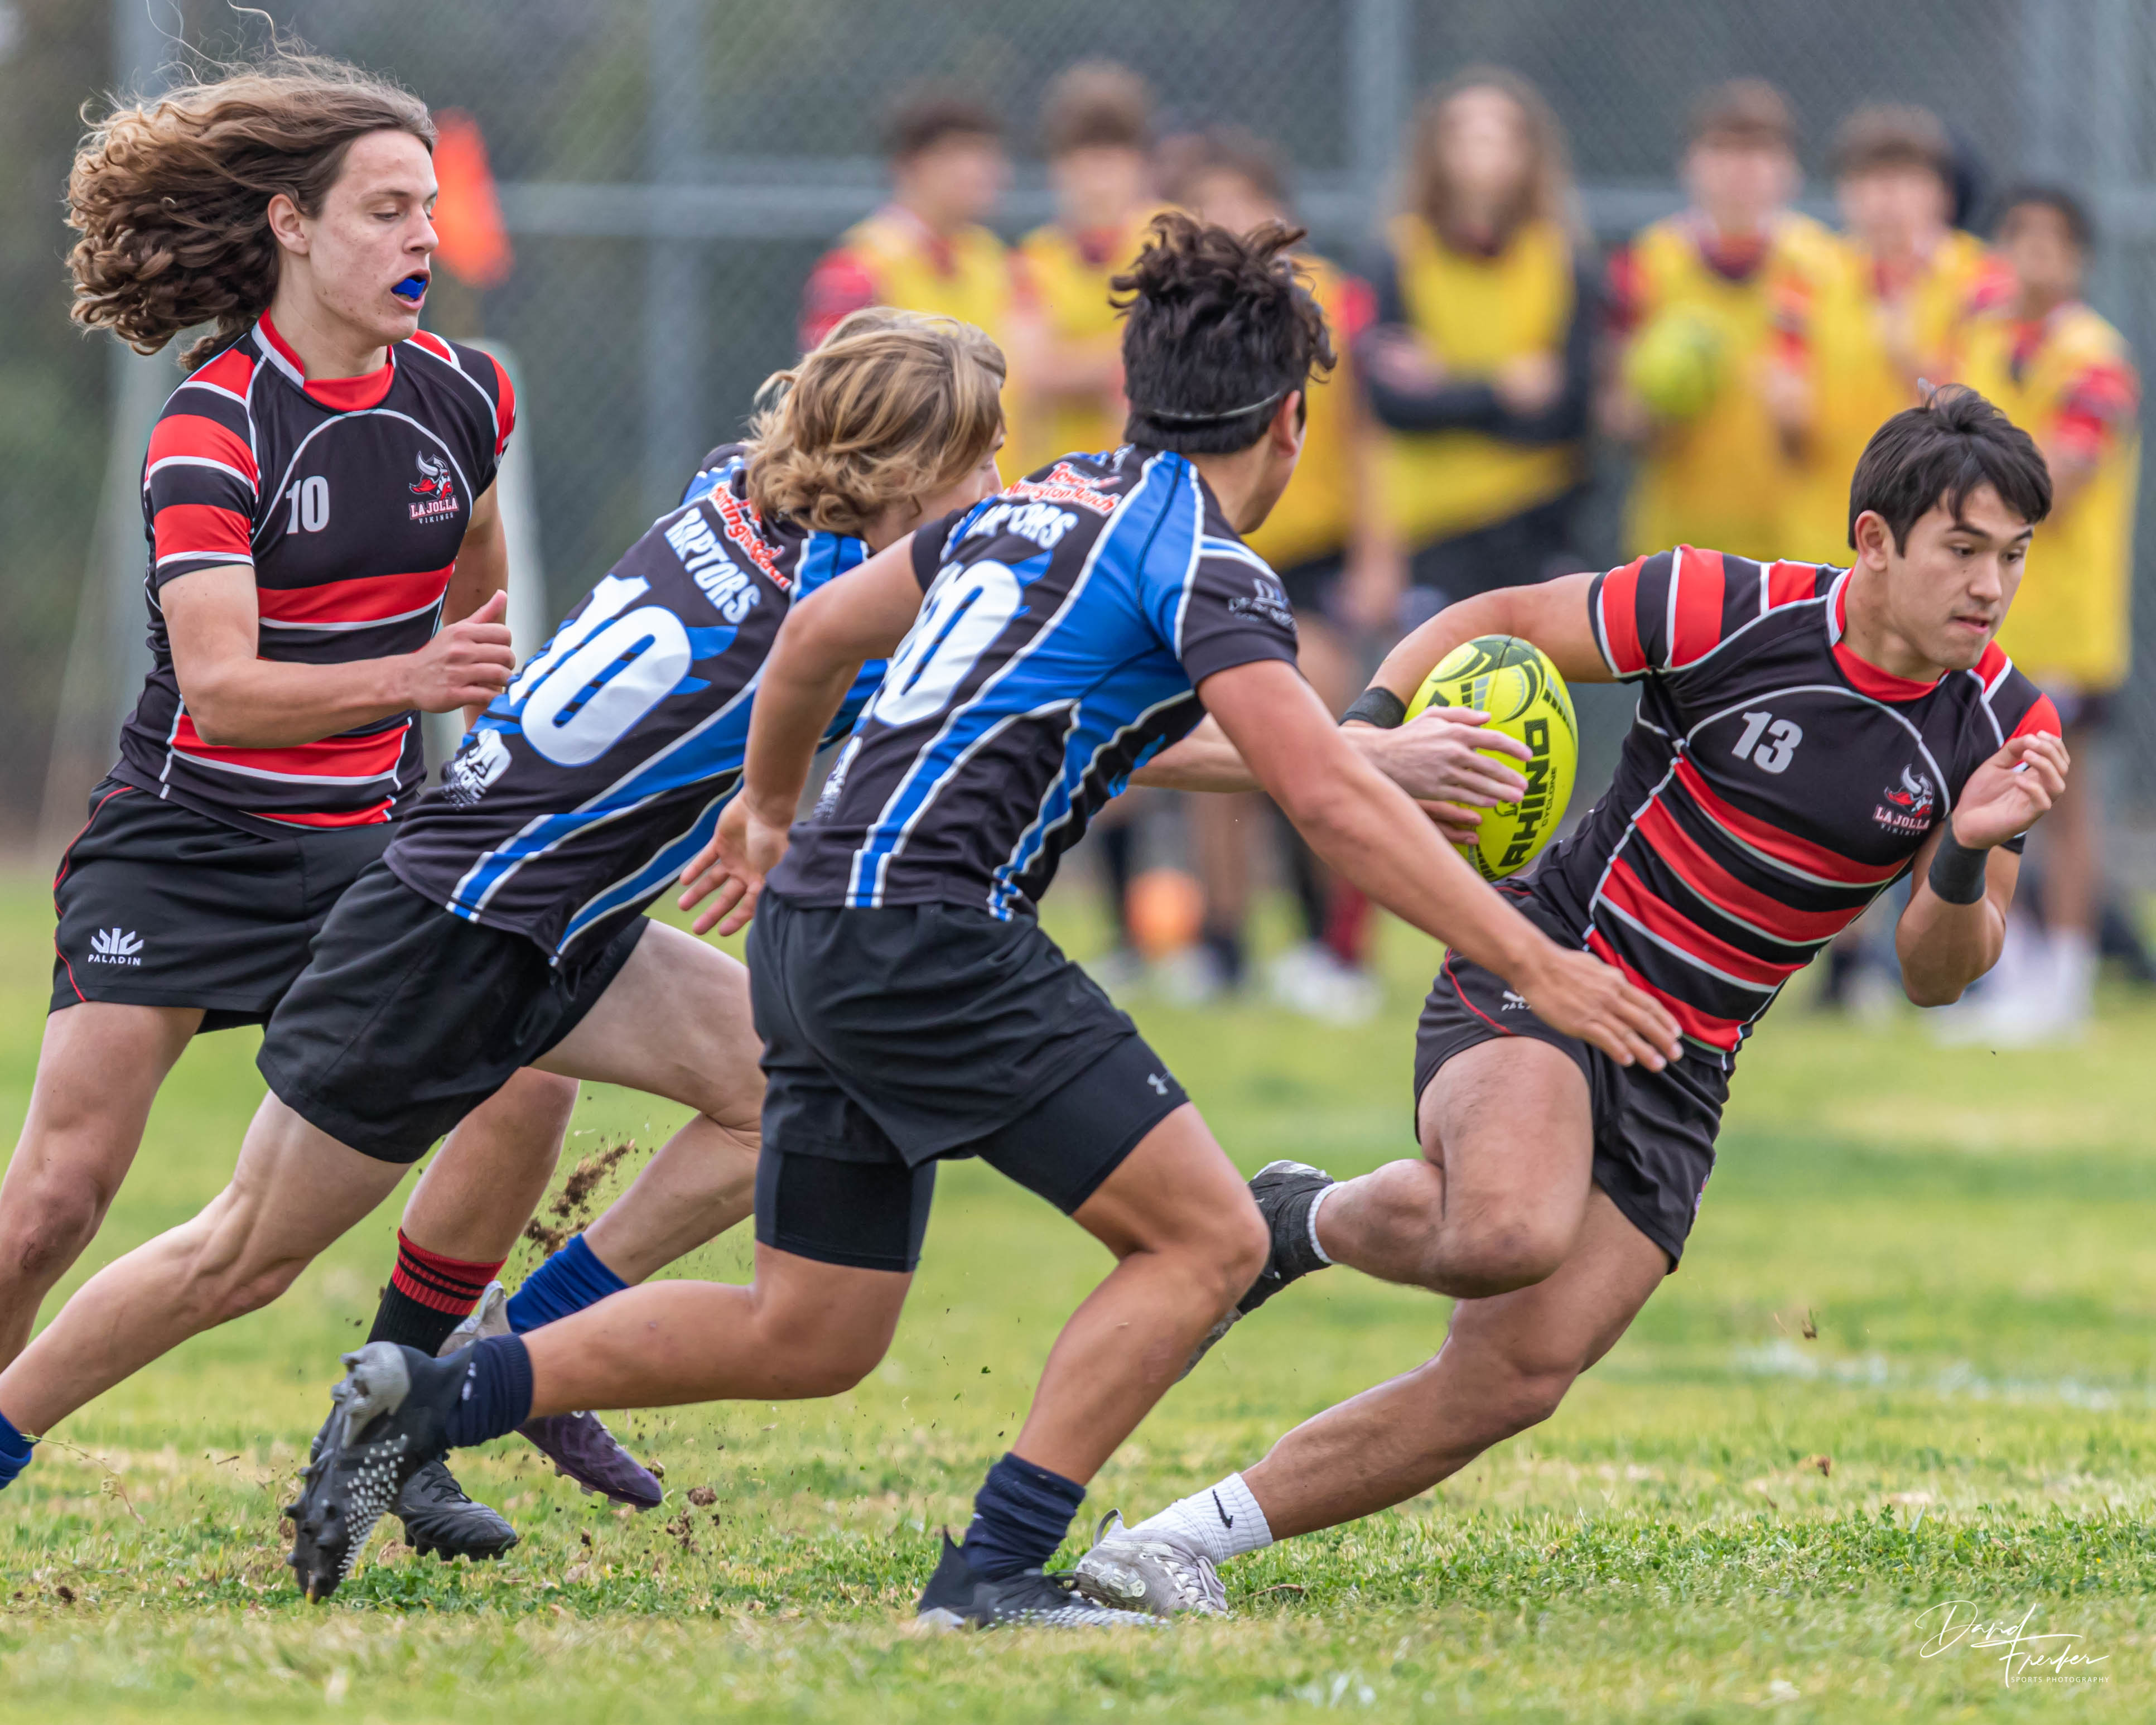 LaJollaRugby16